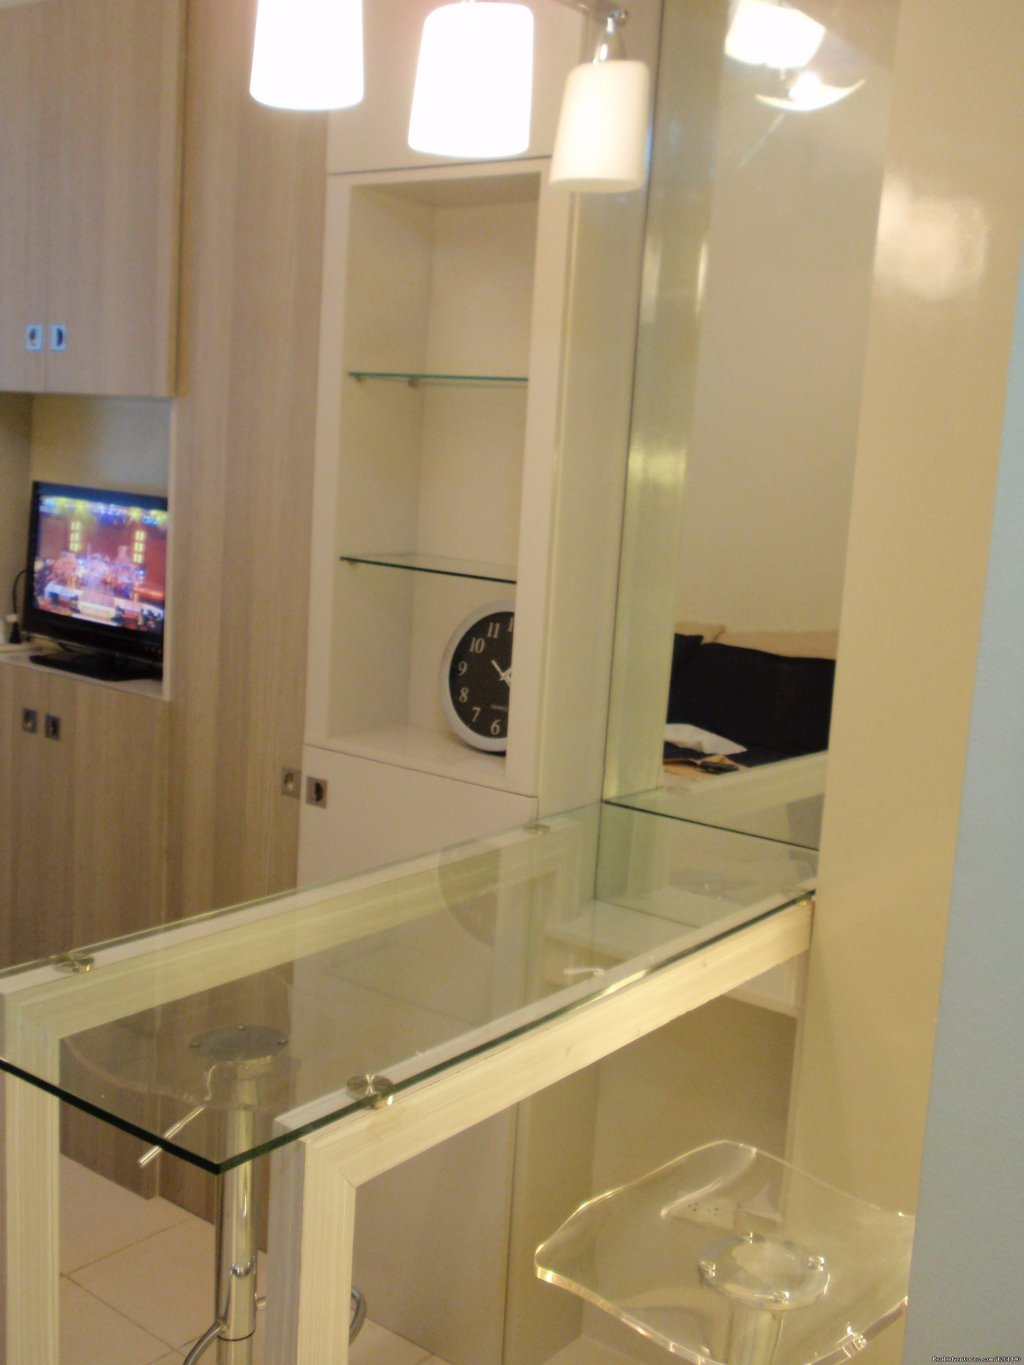 25th Floor Bar Type Dining With 2 High Chairs | Image #18/26 | Fully Furnished Studio-Condo Unit in Manila